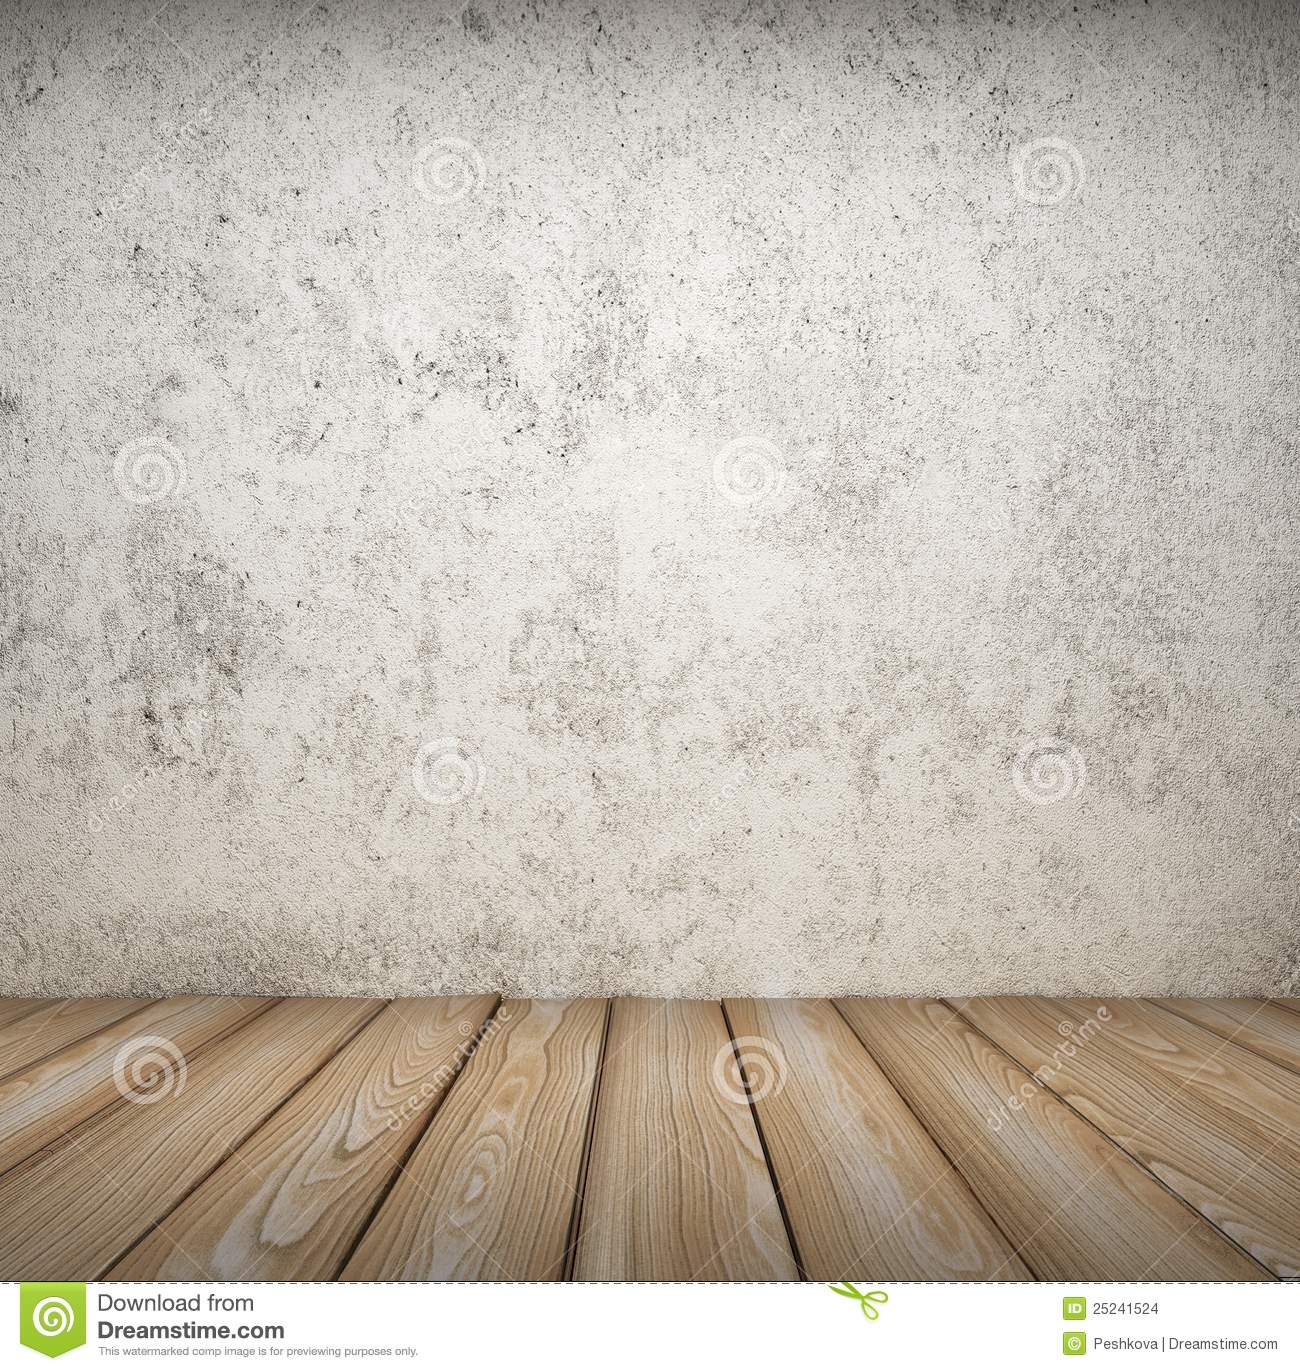 Floor And Wall Textured Stock Photo Image Of Interior 25241524